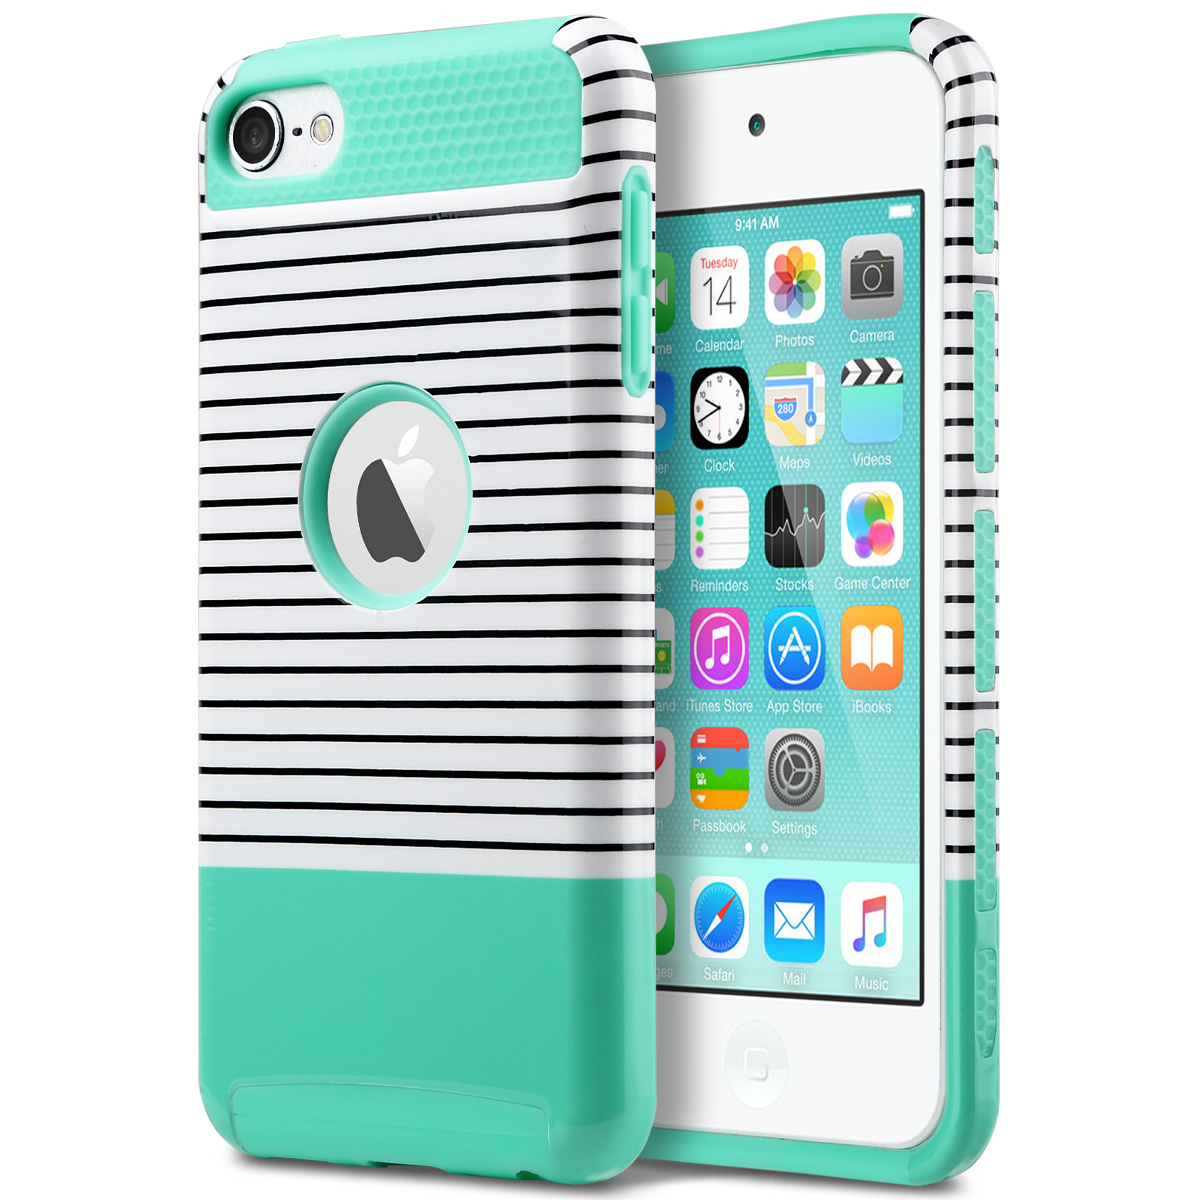 sports shoes 68d6c f3b08 Details about Slim Hybrid Rubber PC Shockproof Impact Hard Case Cover for  iPod Touch 6/5th Gen